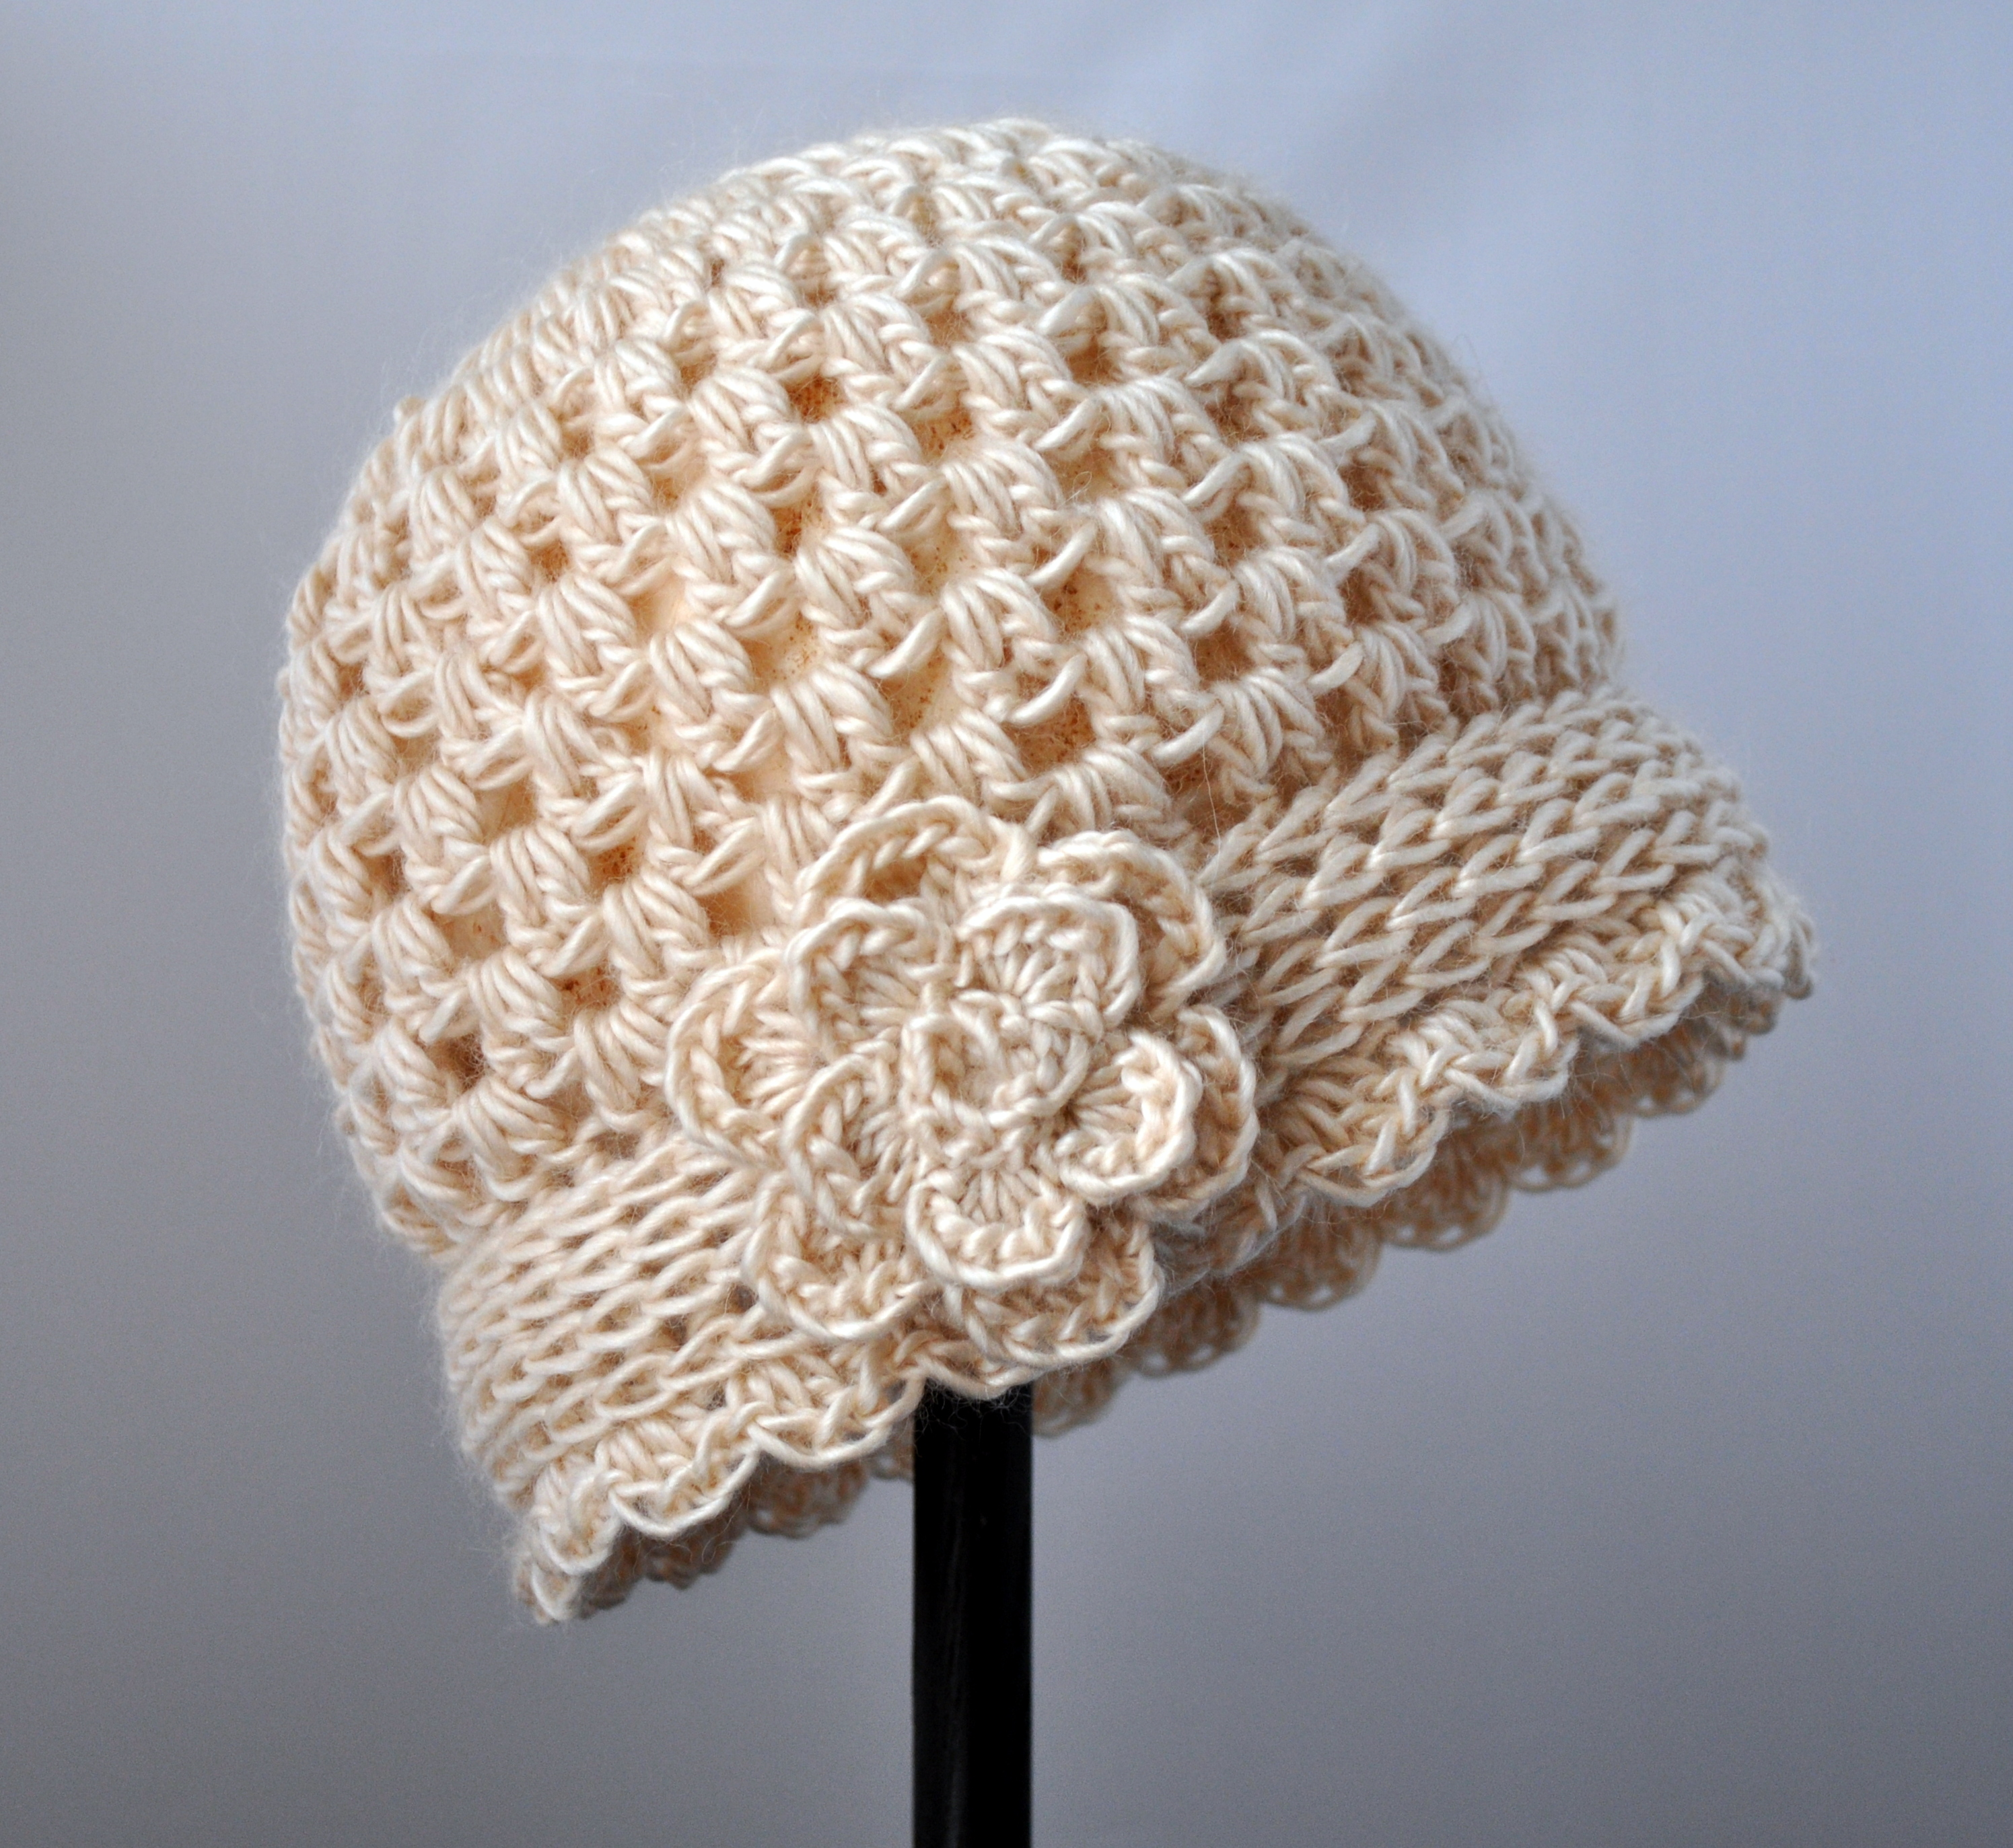 Crochet Stitches For Beanies : Crochet Vintage Cloche - Updated Sizes!